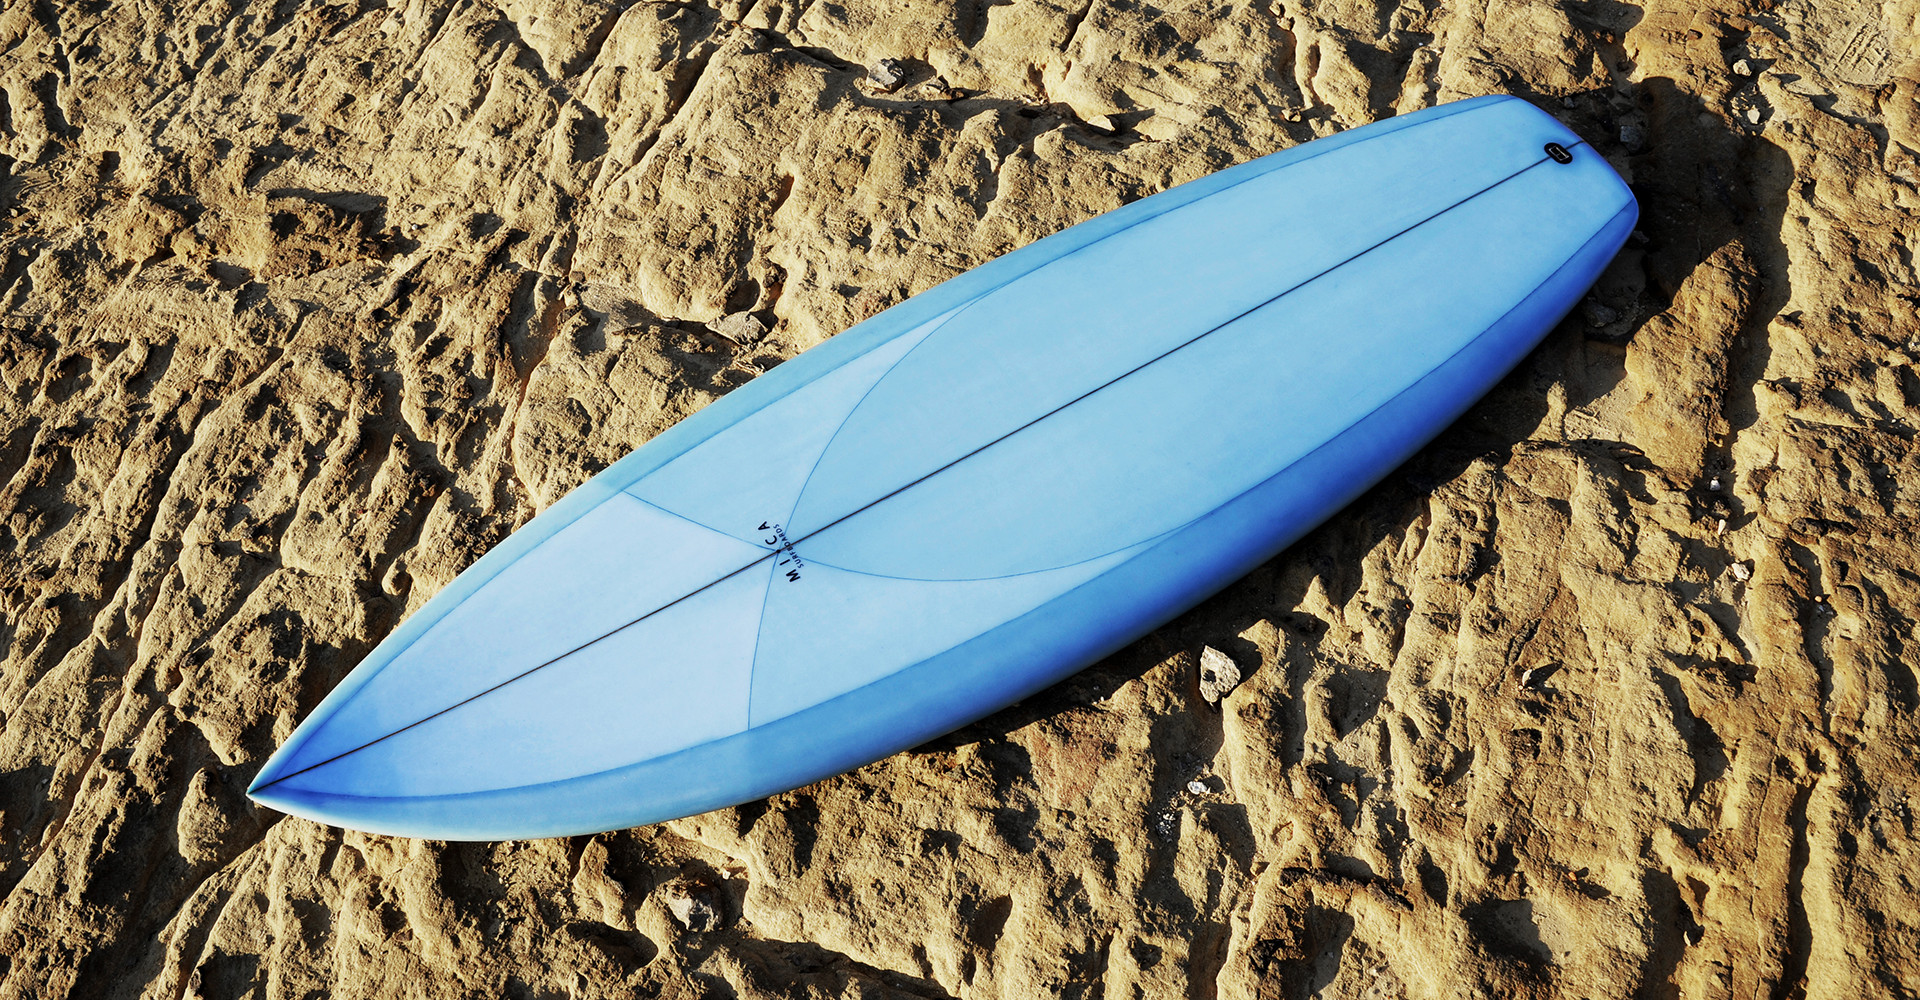 A custom board with Resin Tint - made by Micasurfboards